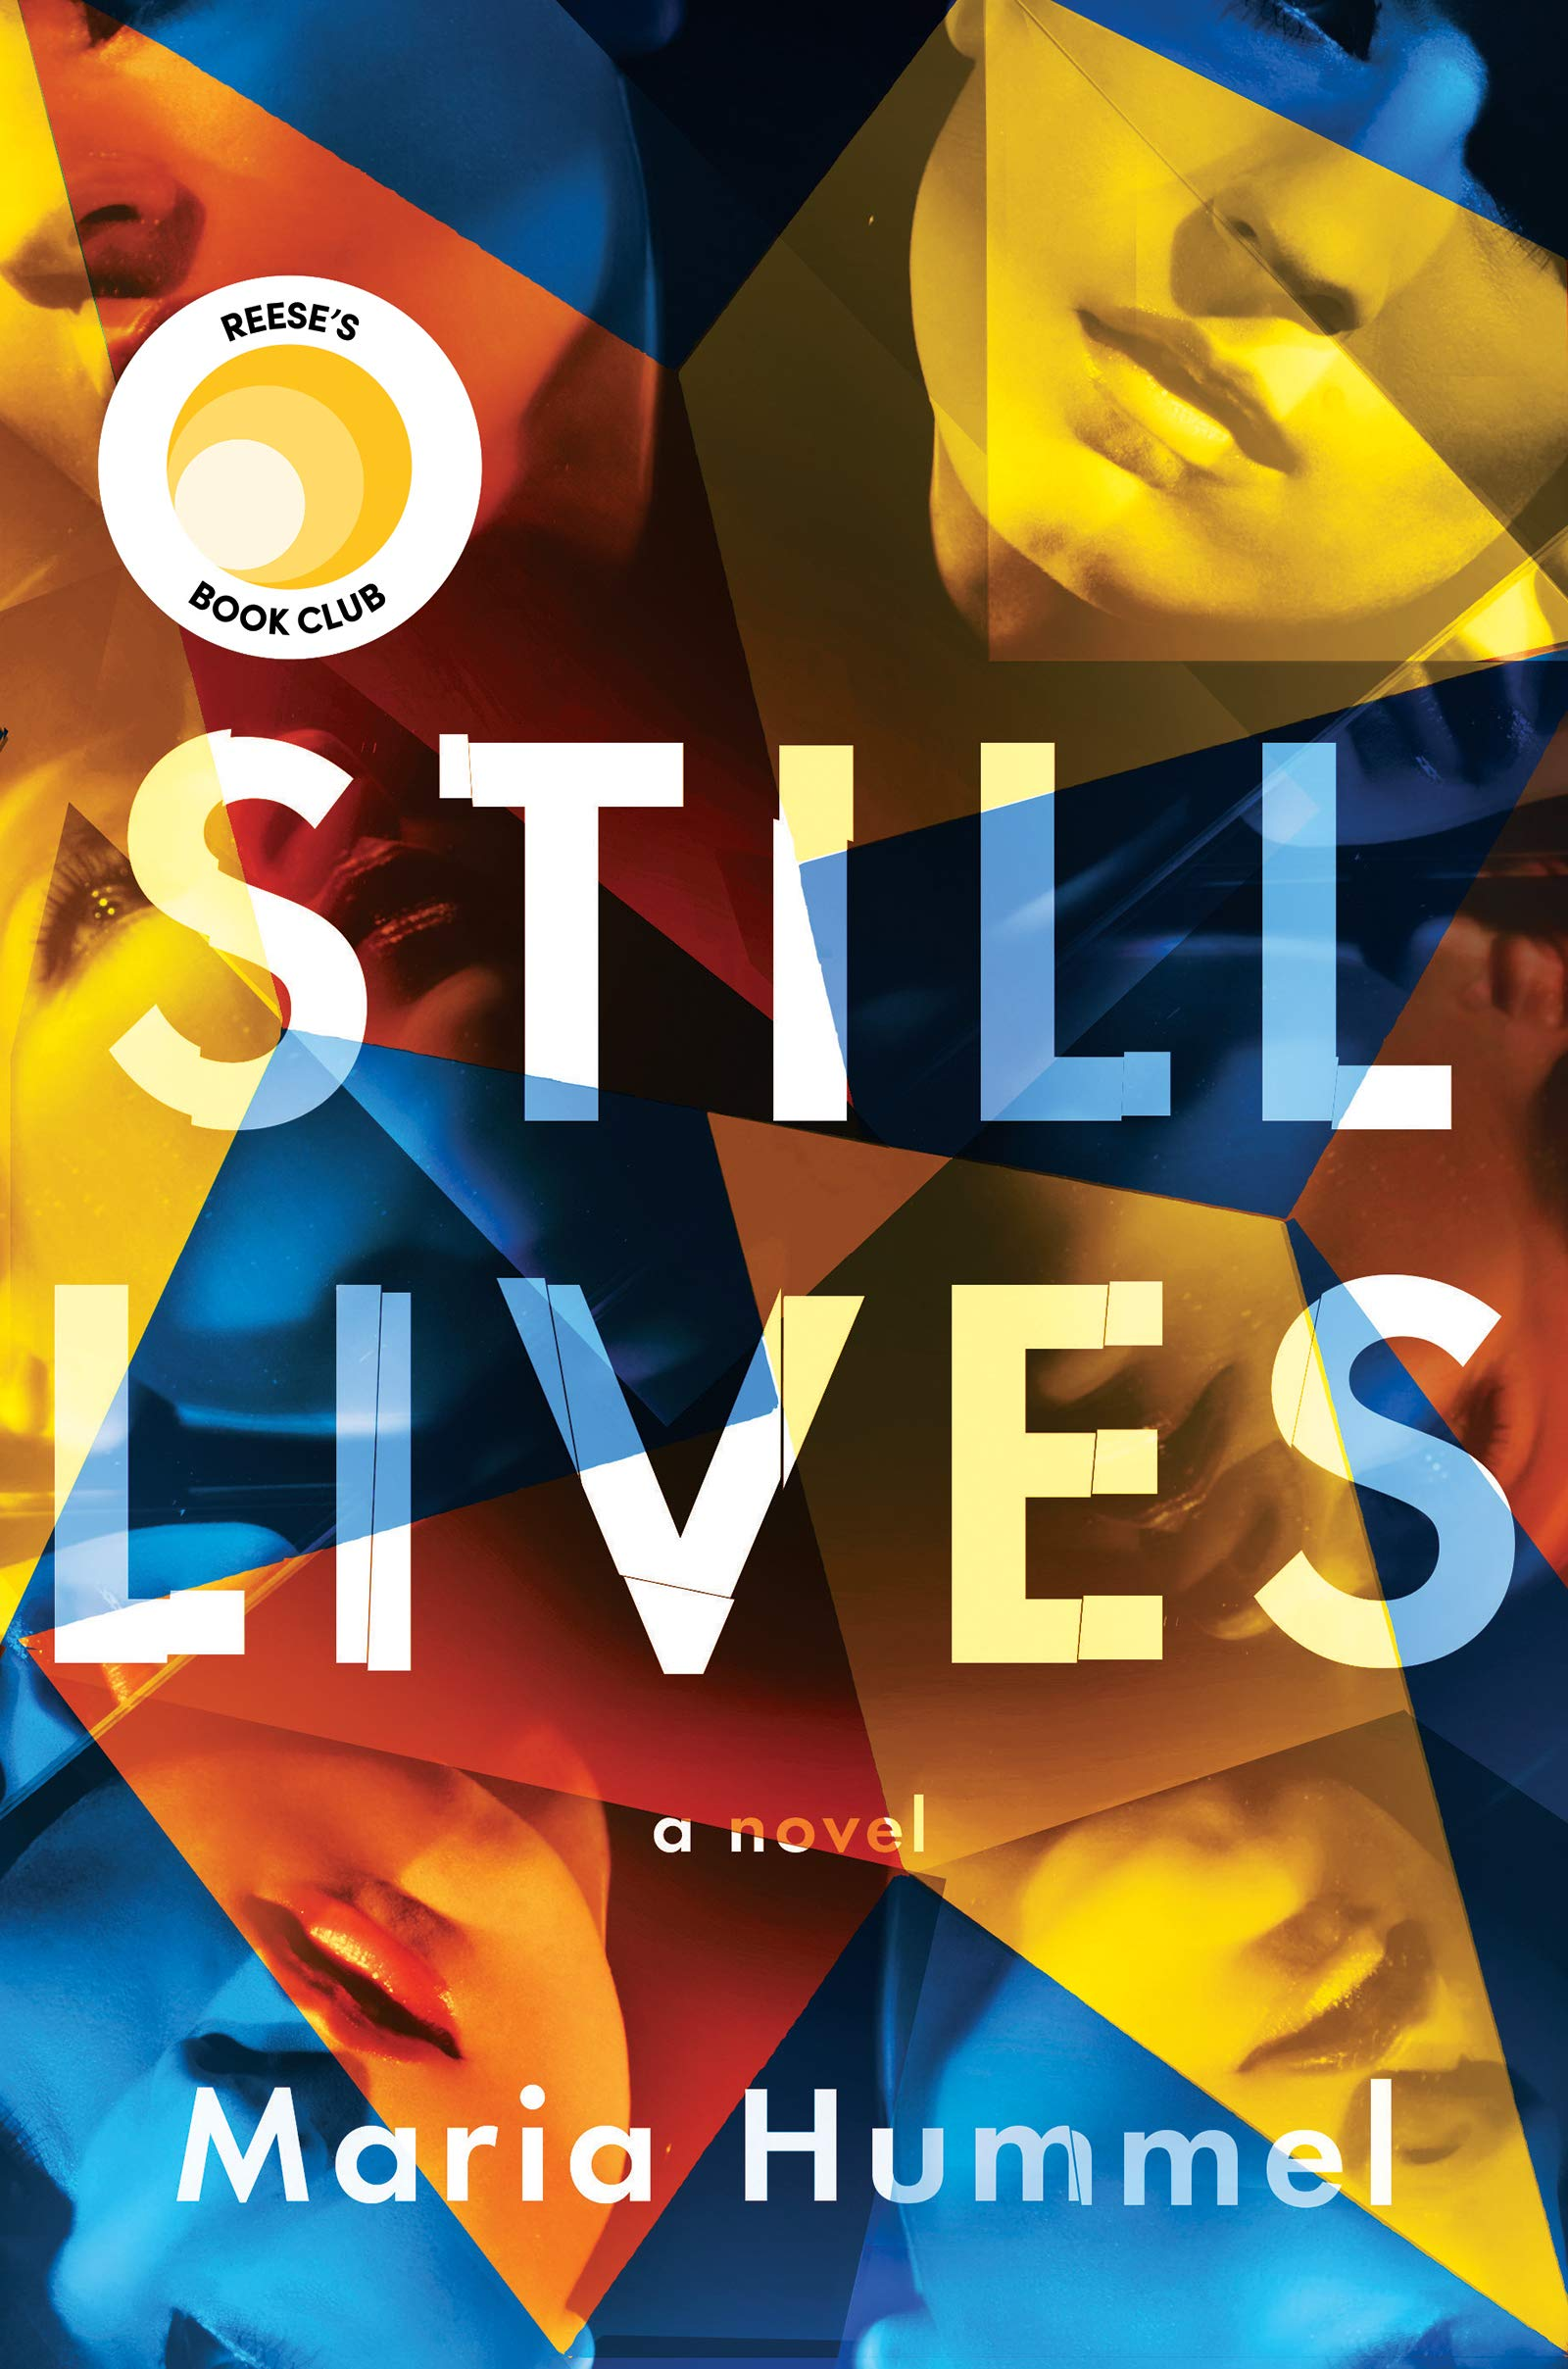 The cover of the book Still Lives